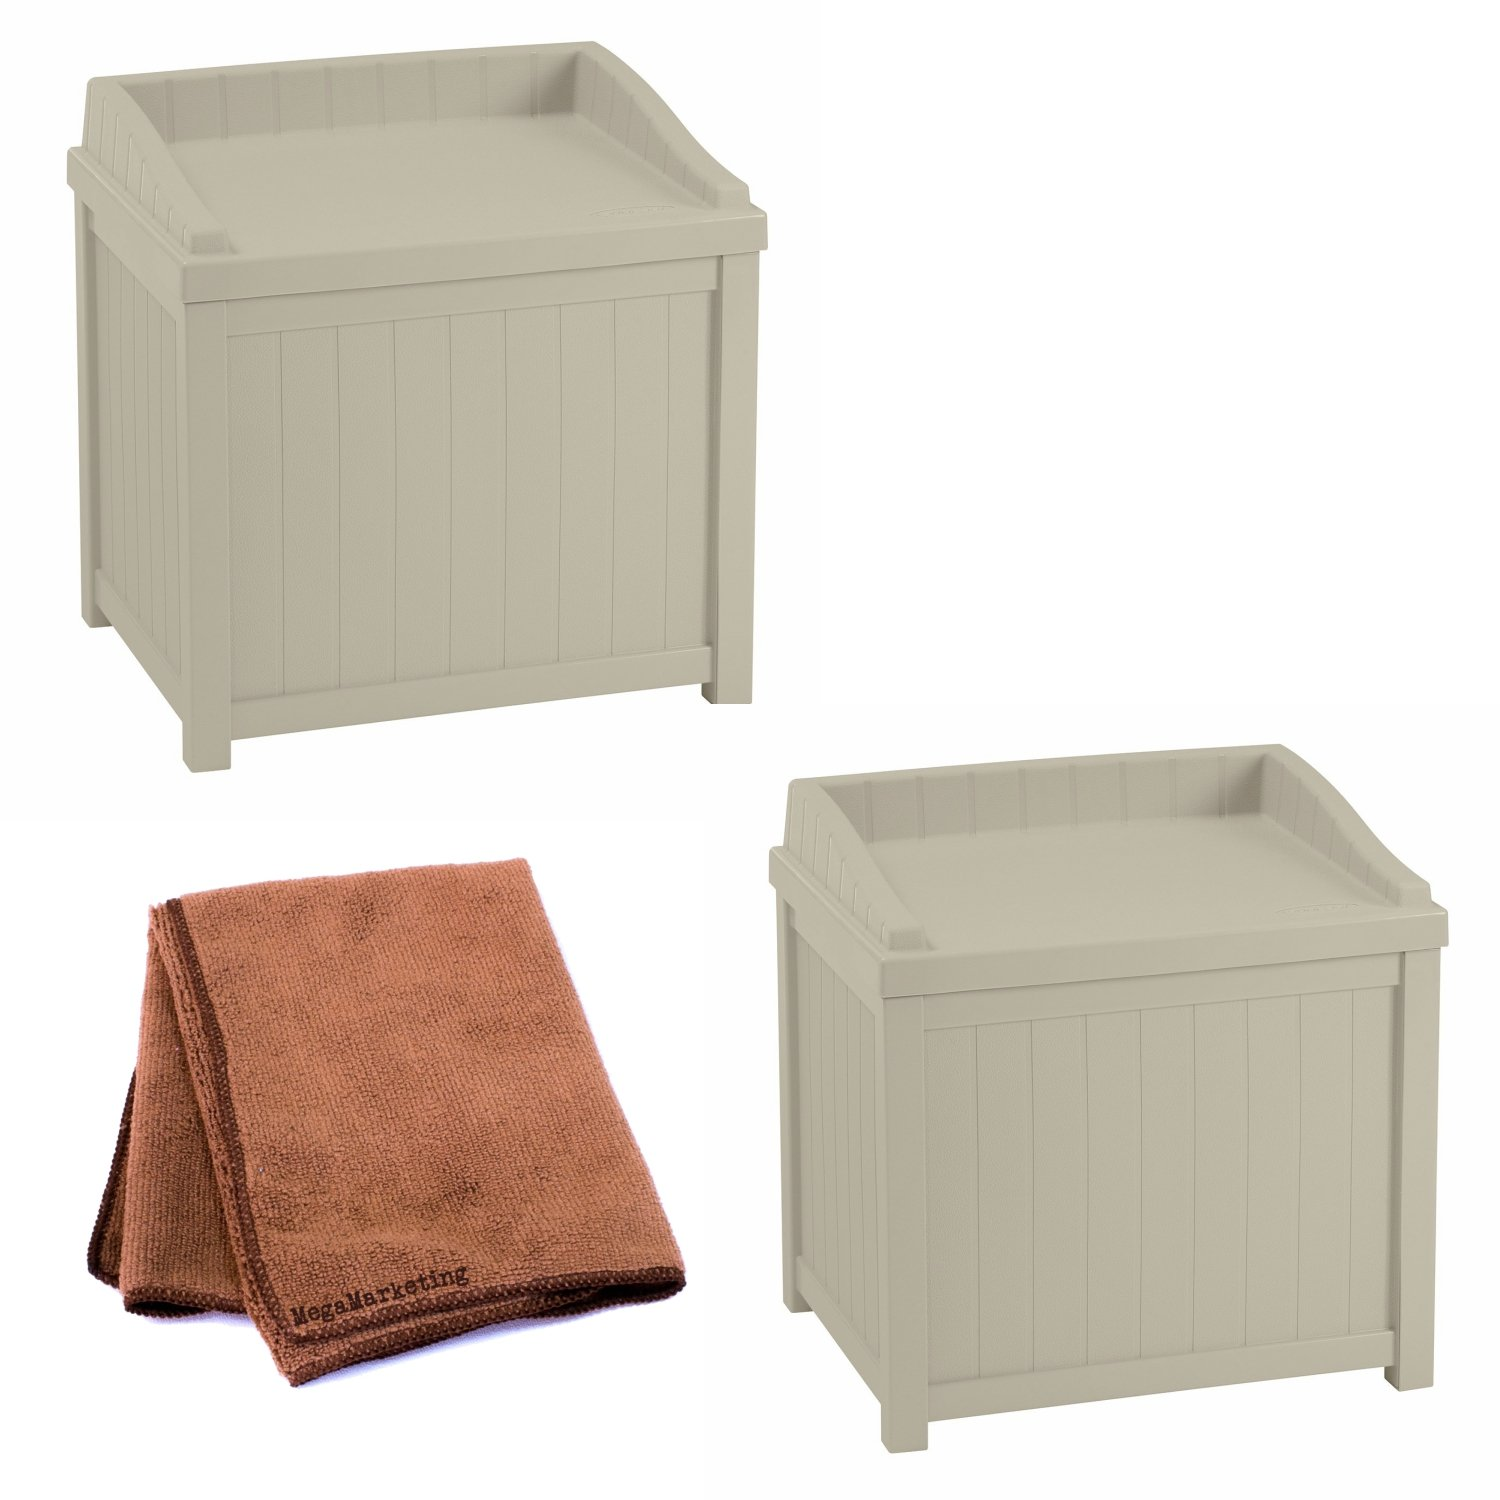 Charmant Amazon.com : Suncast SS1000 Storage Seat, Set Of 2 With Cleaning Cloth :  Garden U0026 Outdoor